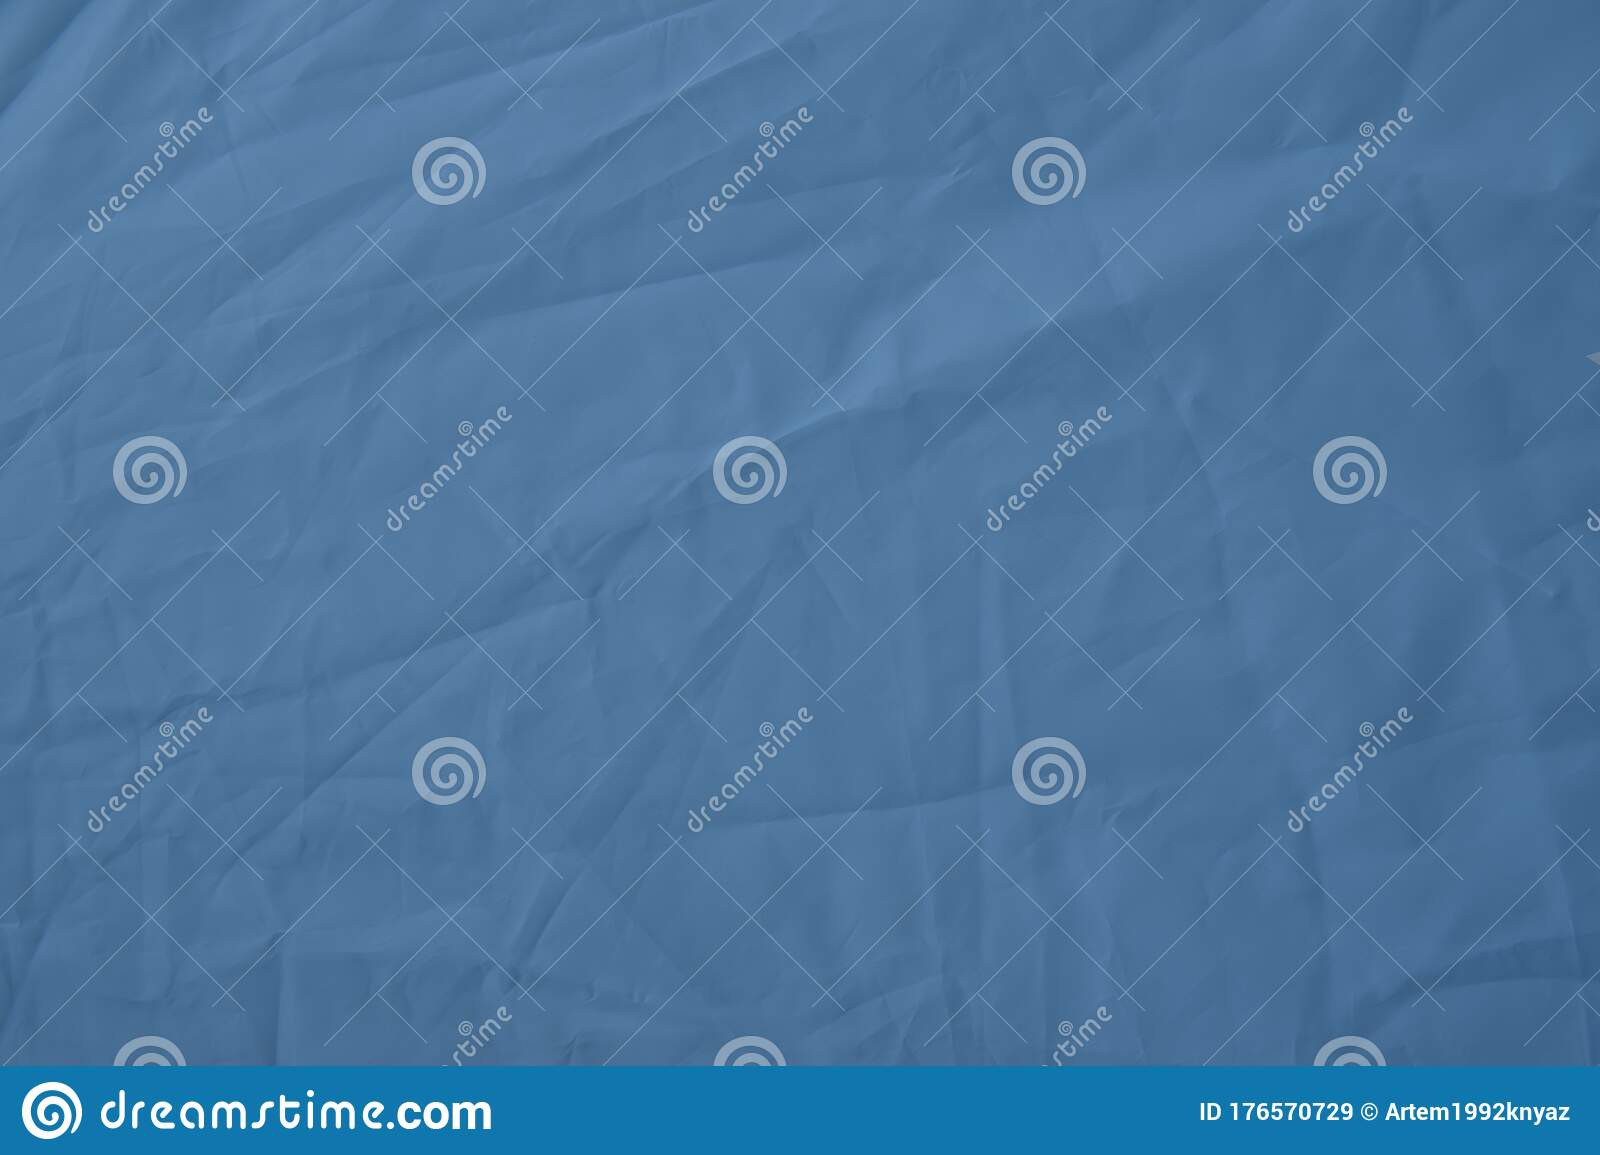 soft blue textured fabric cloth ripple textile surface simple background wallpaper pattern space copy your text soft blue